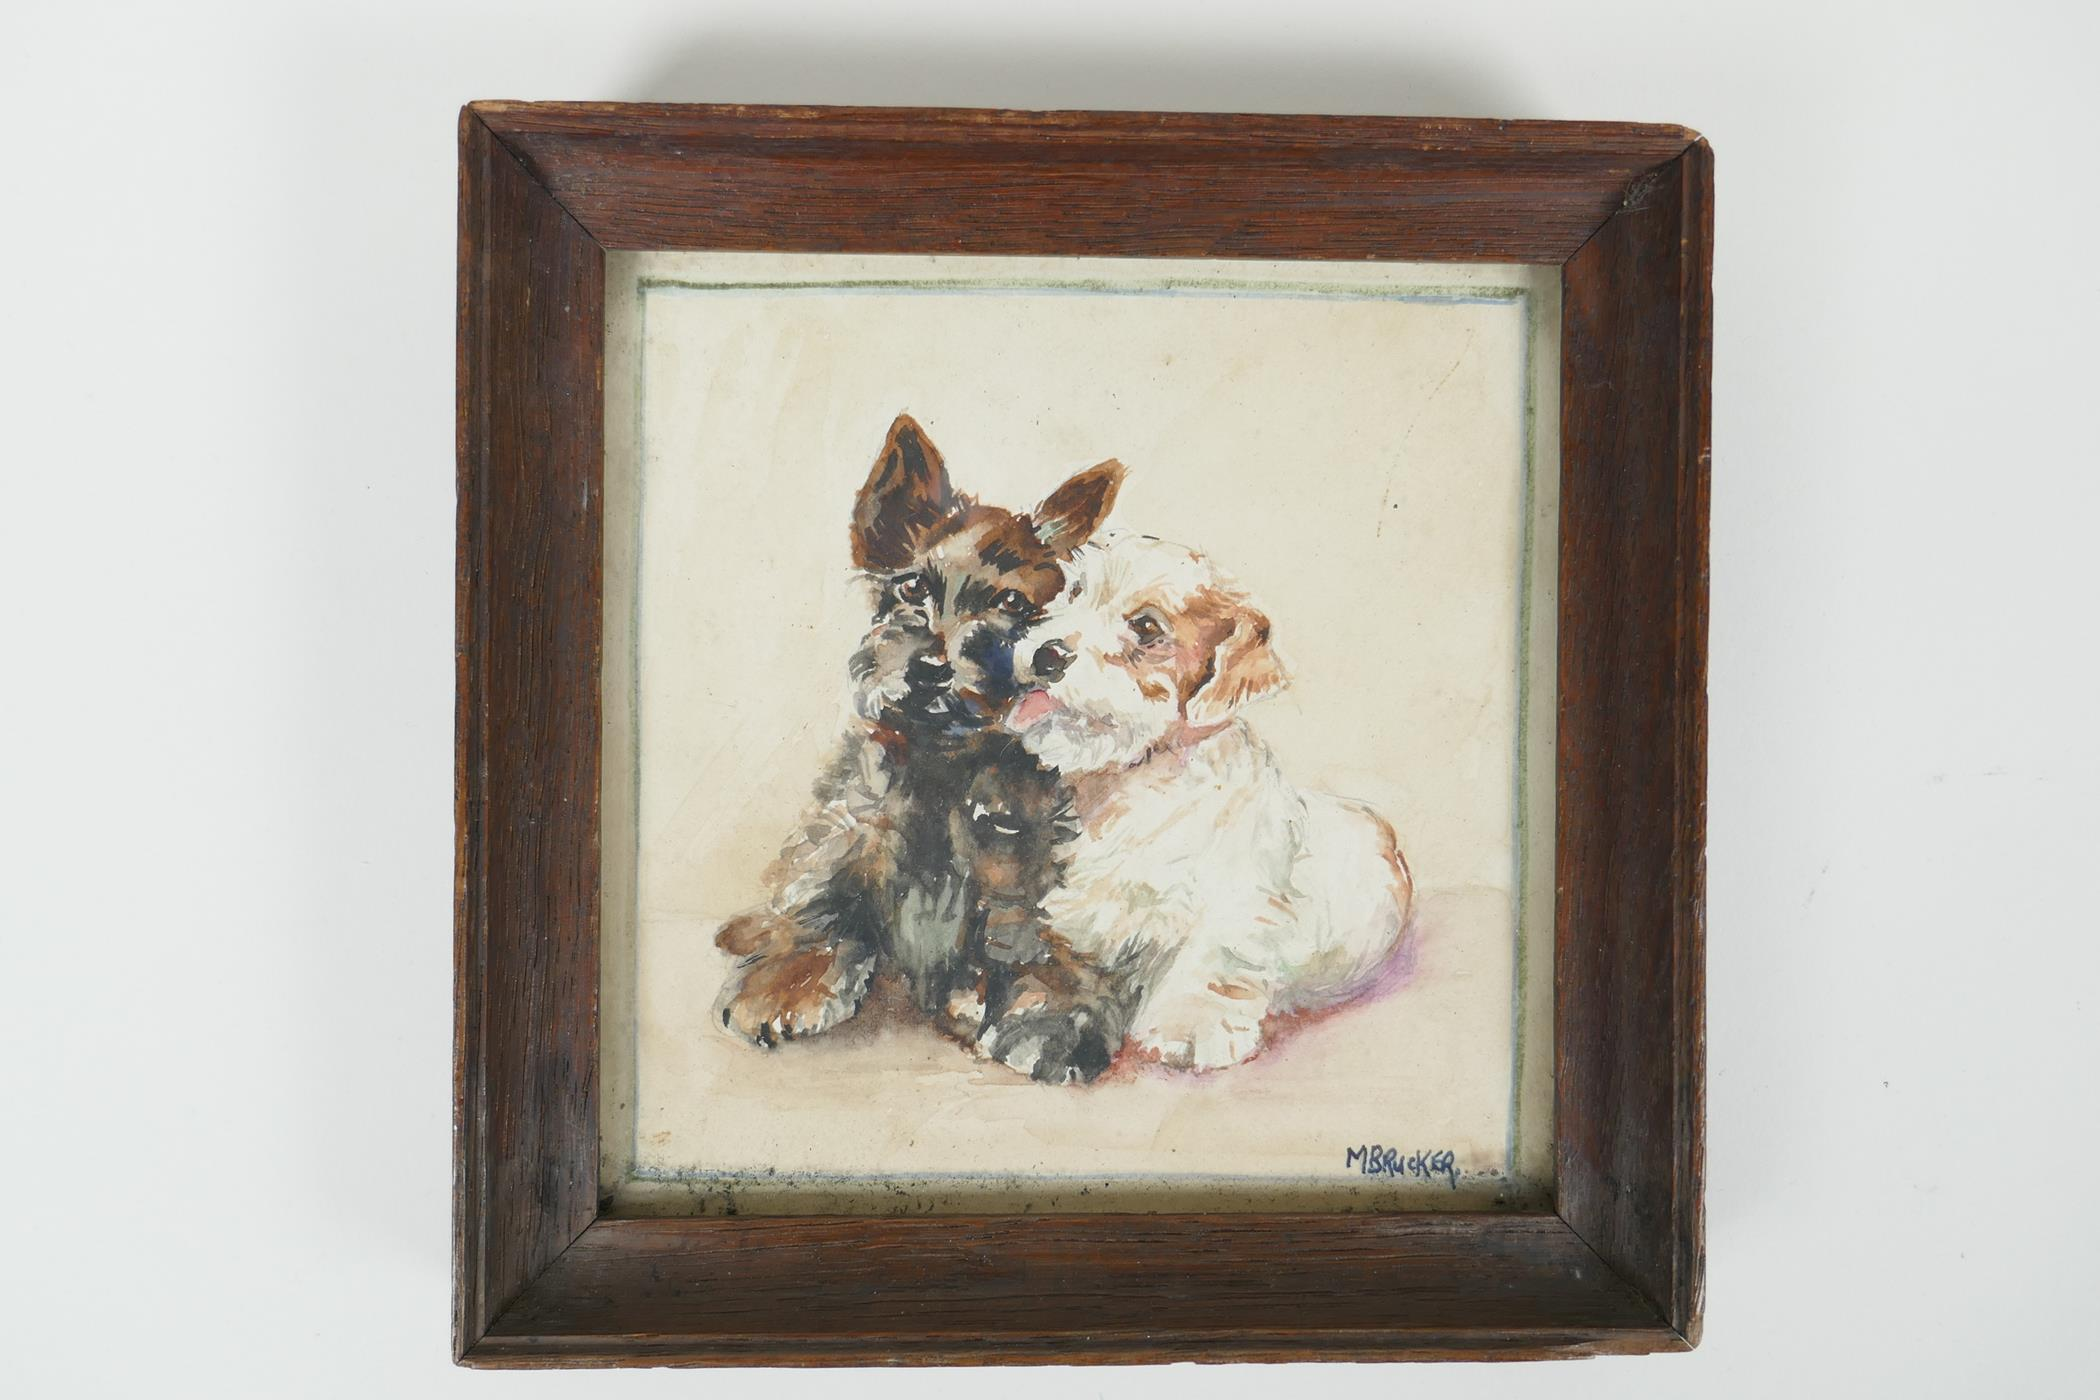 """M. Brucker, small watercolour of two dogs, signed, 5"""" x 5"""" - Image 3 of 4"""